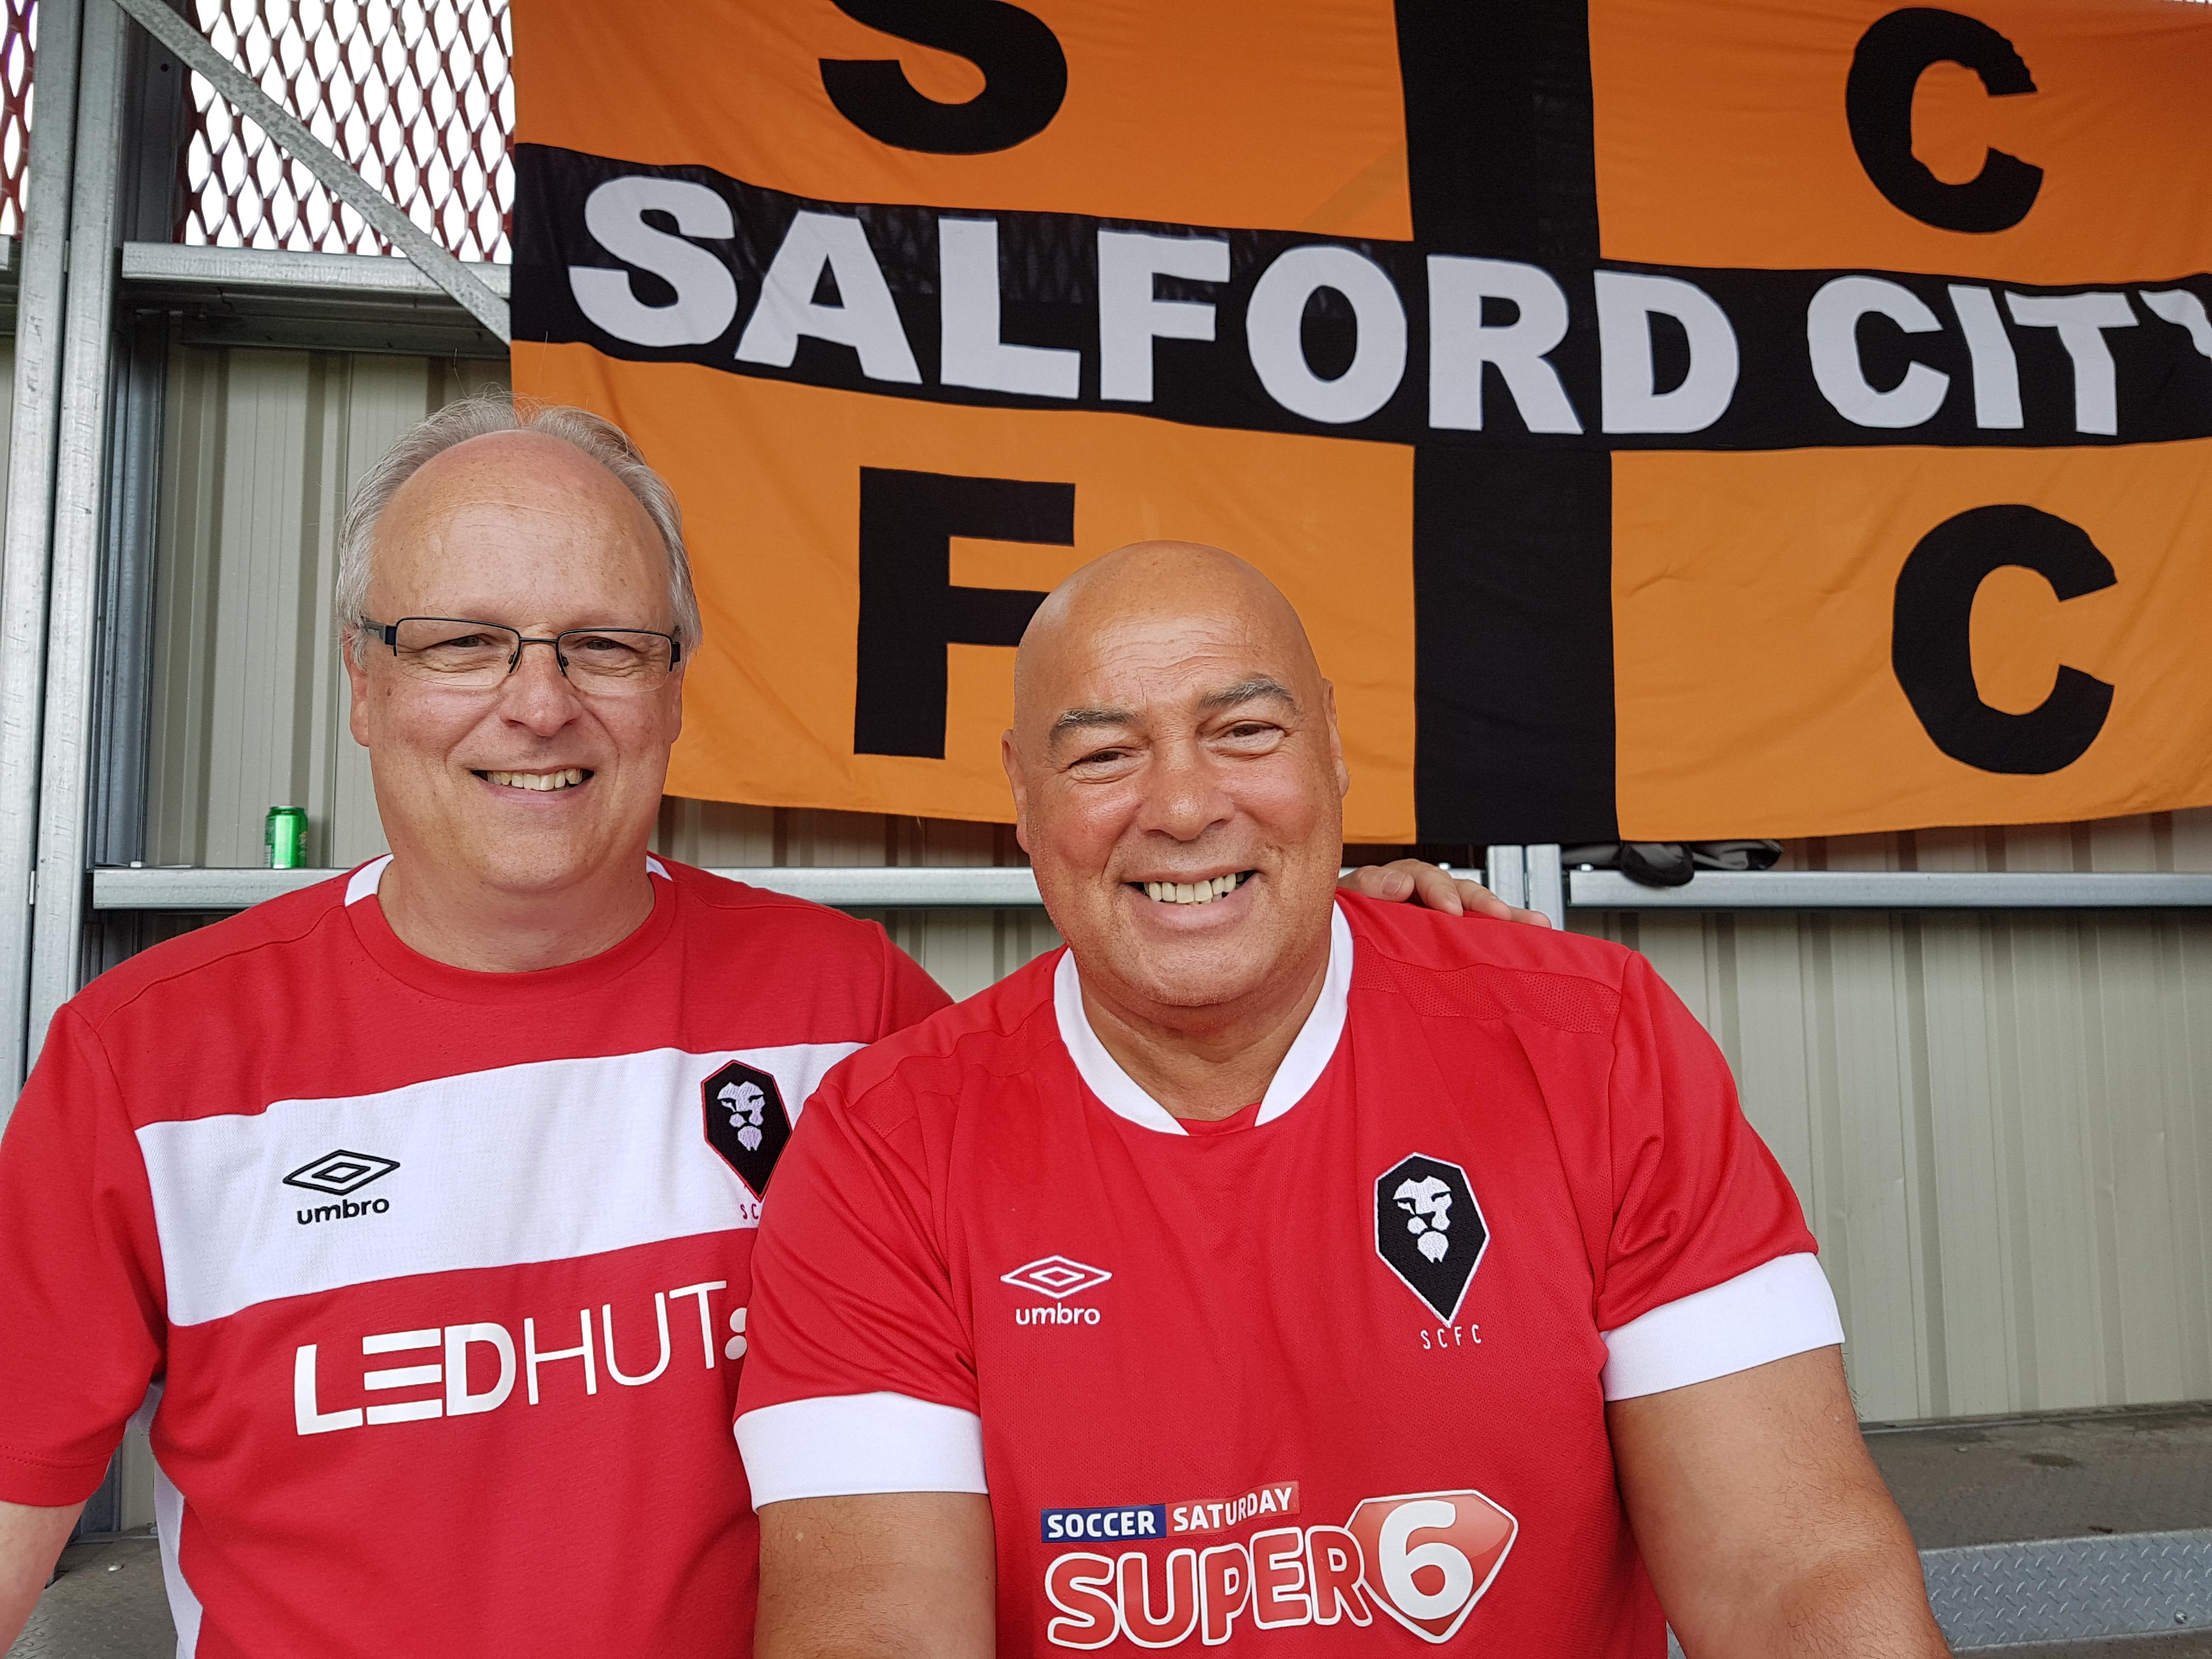 Martin Bester and Mike Willcock have differing experiences of Salford City down the years